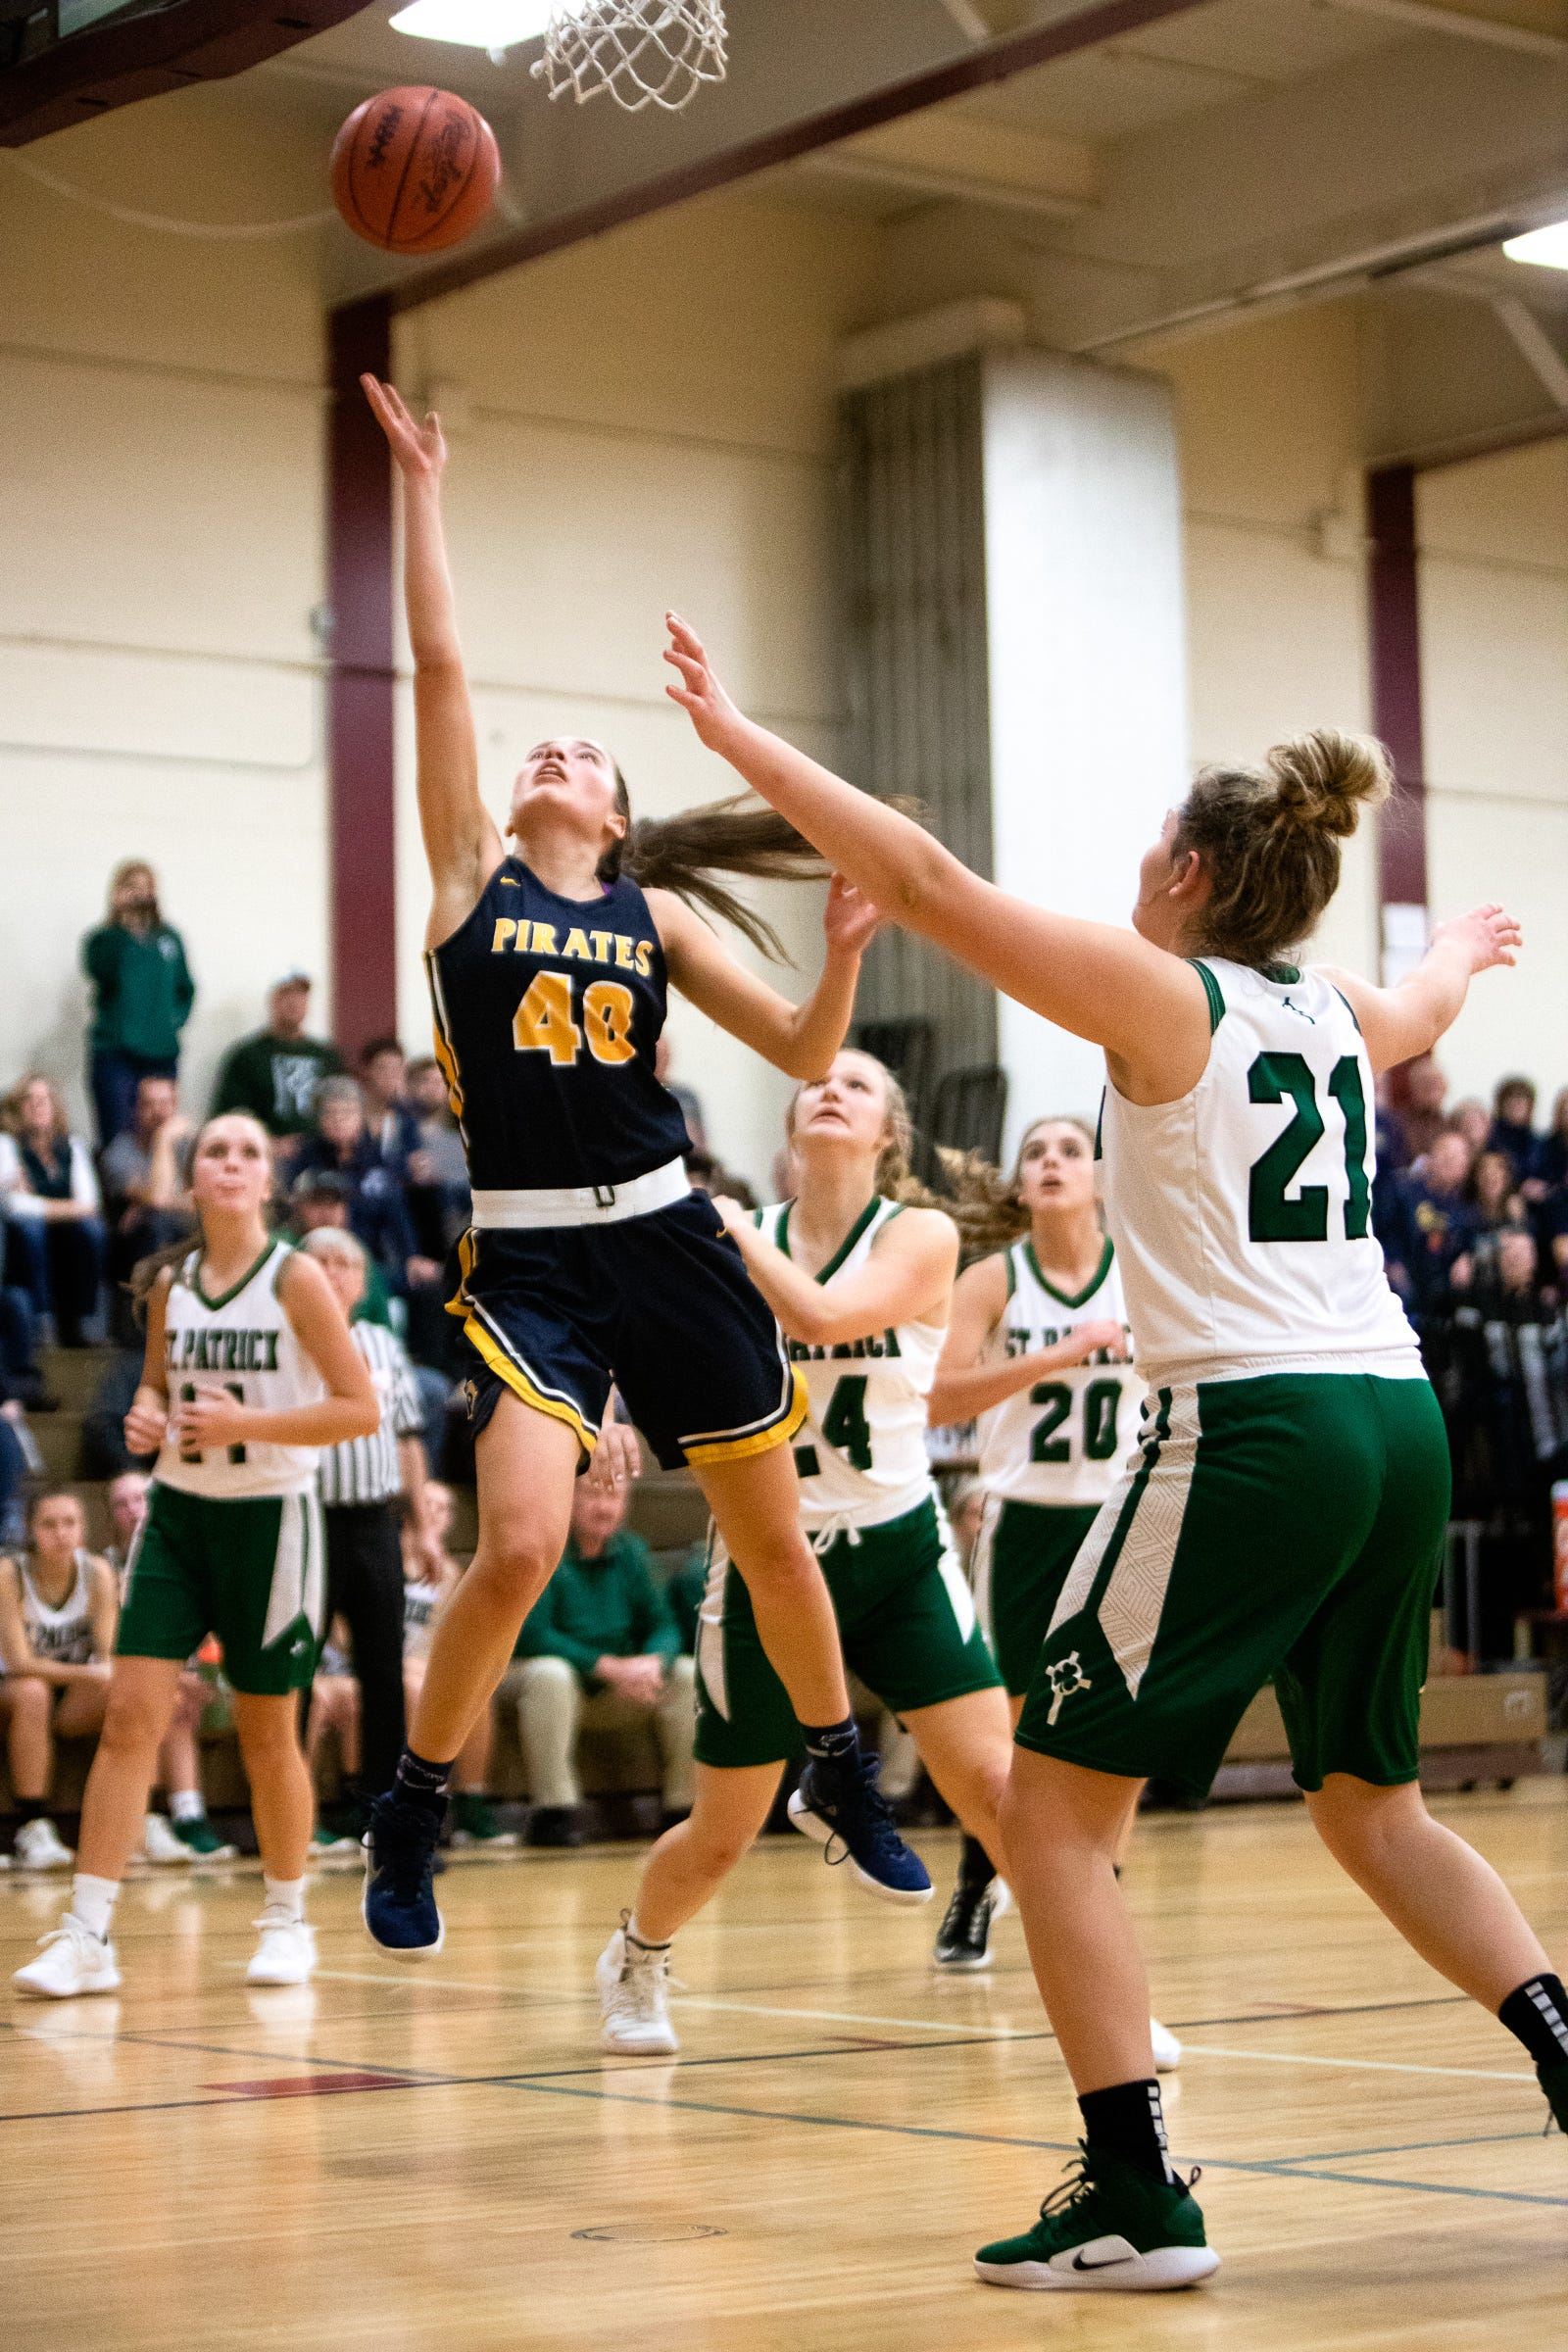 Pewamo-Westphalia junior Ellie Droste is one of the top scorers in the Lansing region. She committed recently to play basketball at Grand Valley State University after high school.